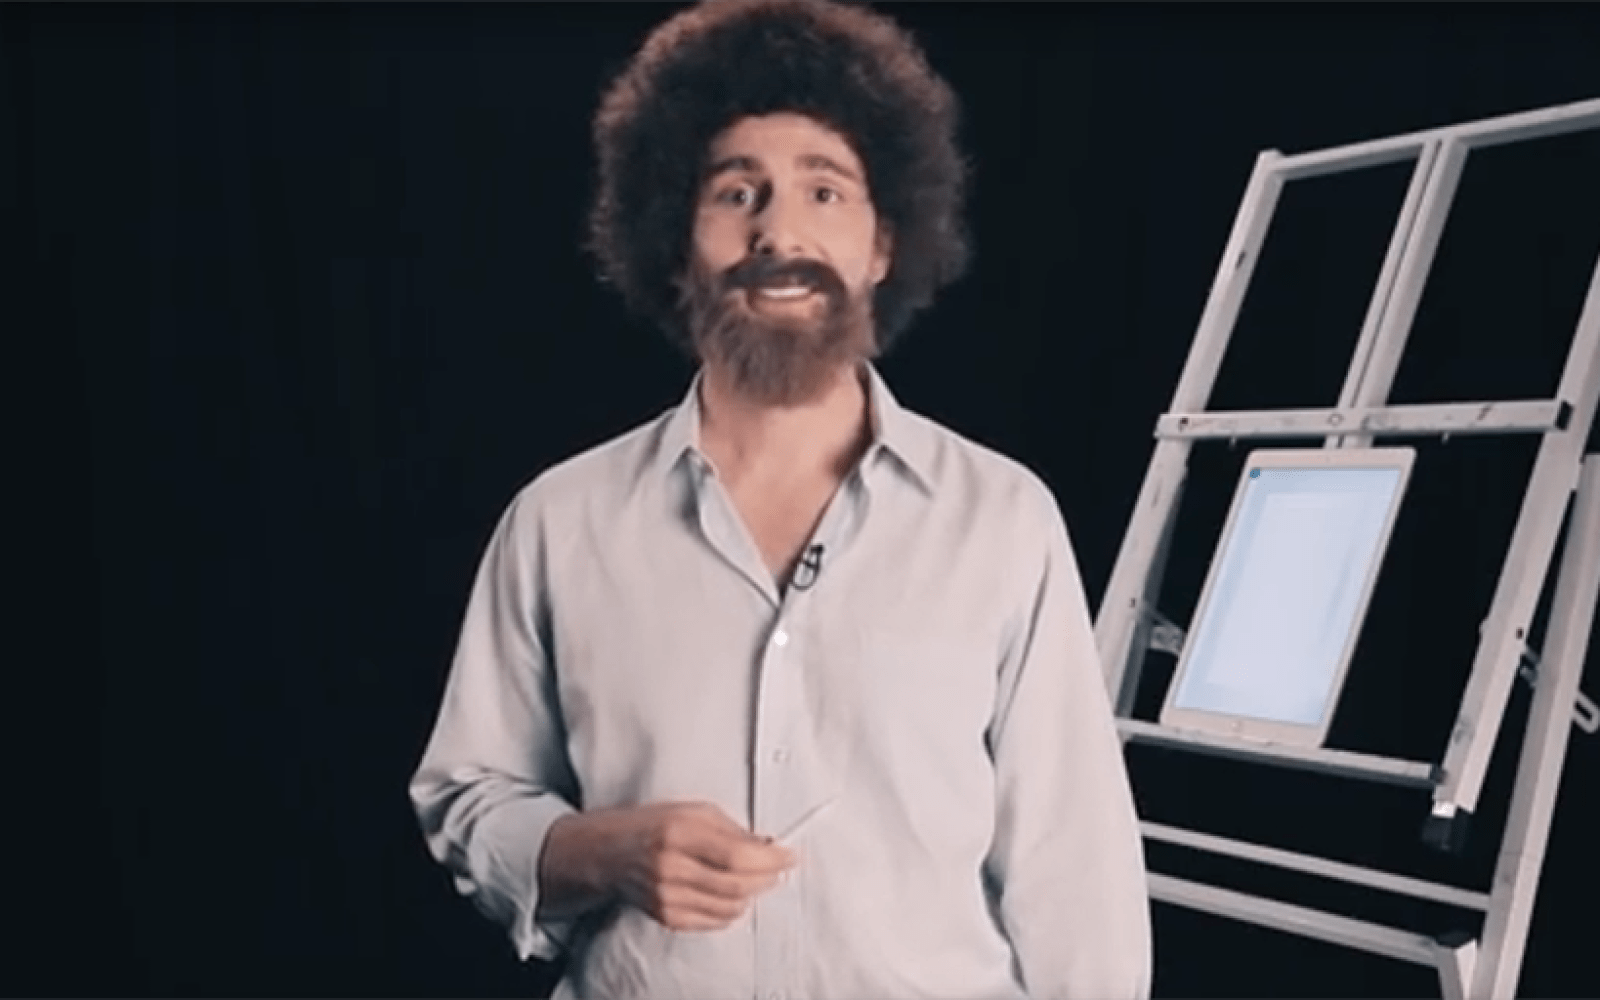 Four part video tutorial taps bob ross lookalike to promote photoshop sketch for ios